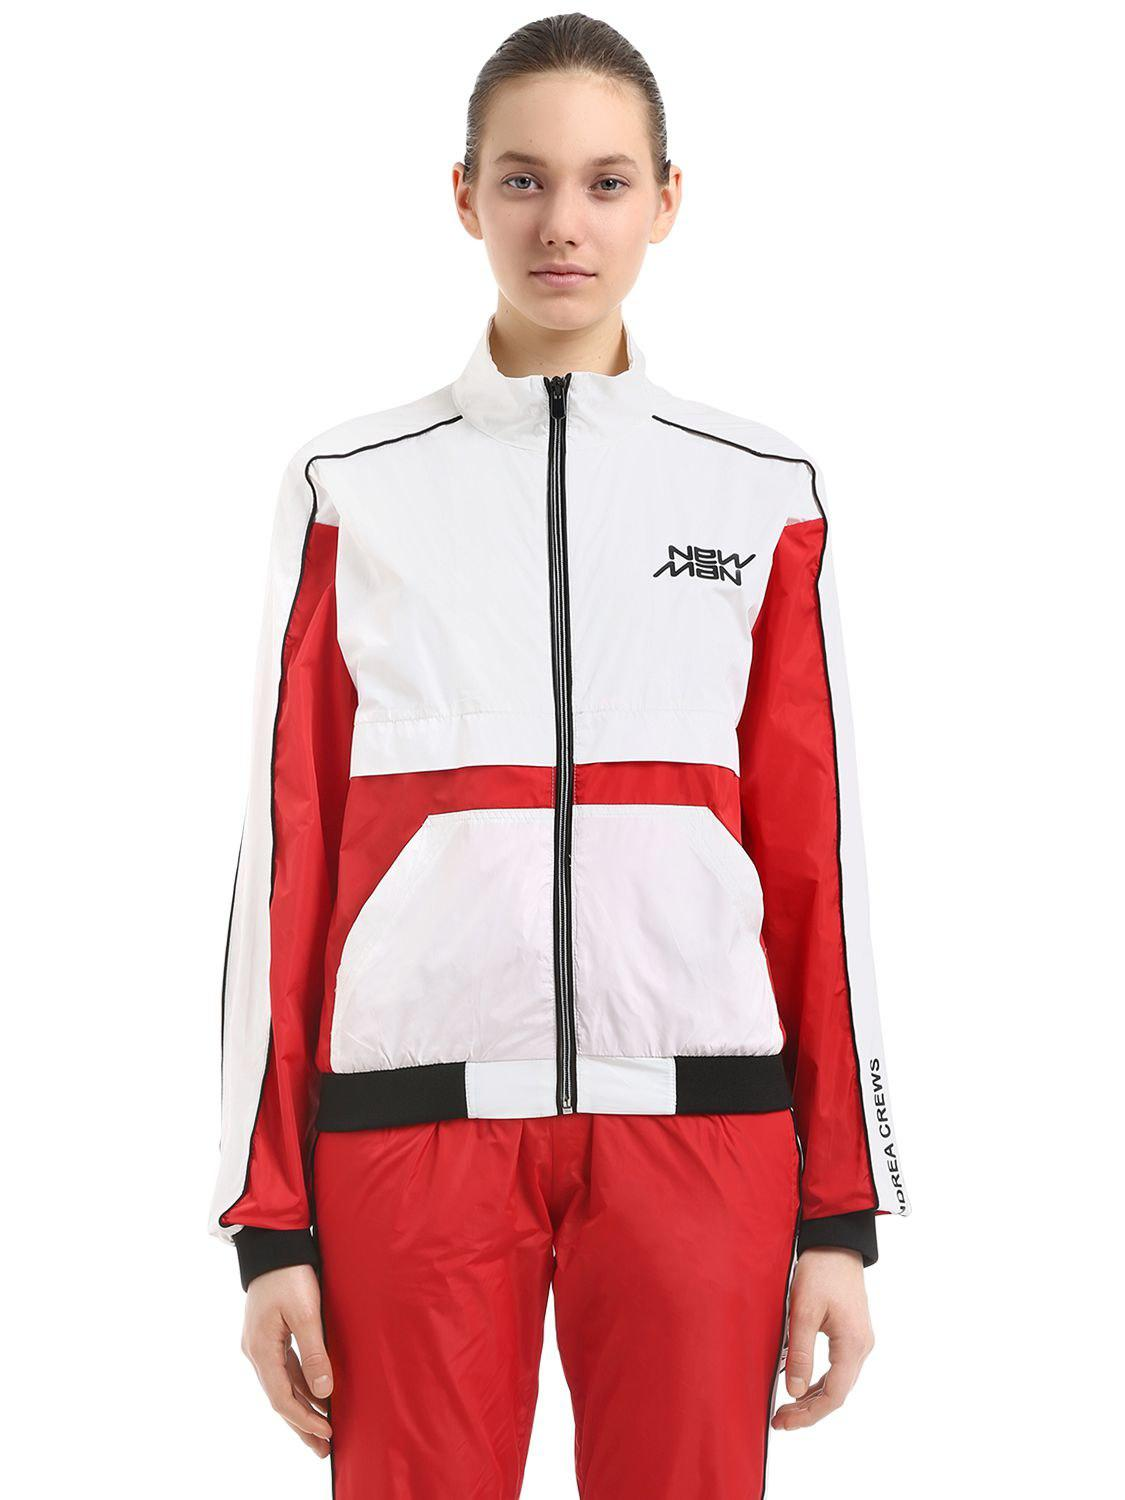 All Size NEW MAN PRINTED NYLON TRACK JACKET Discount 2018 Clearance Store Unisex Buy Cheap Low Cost RaqsrM2L